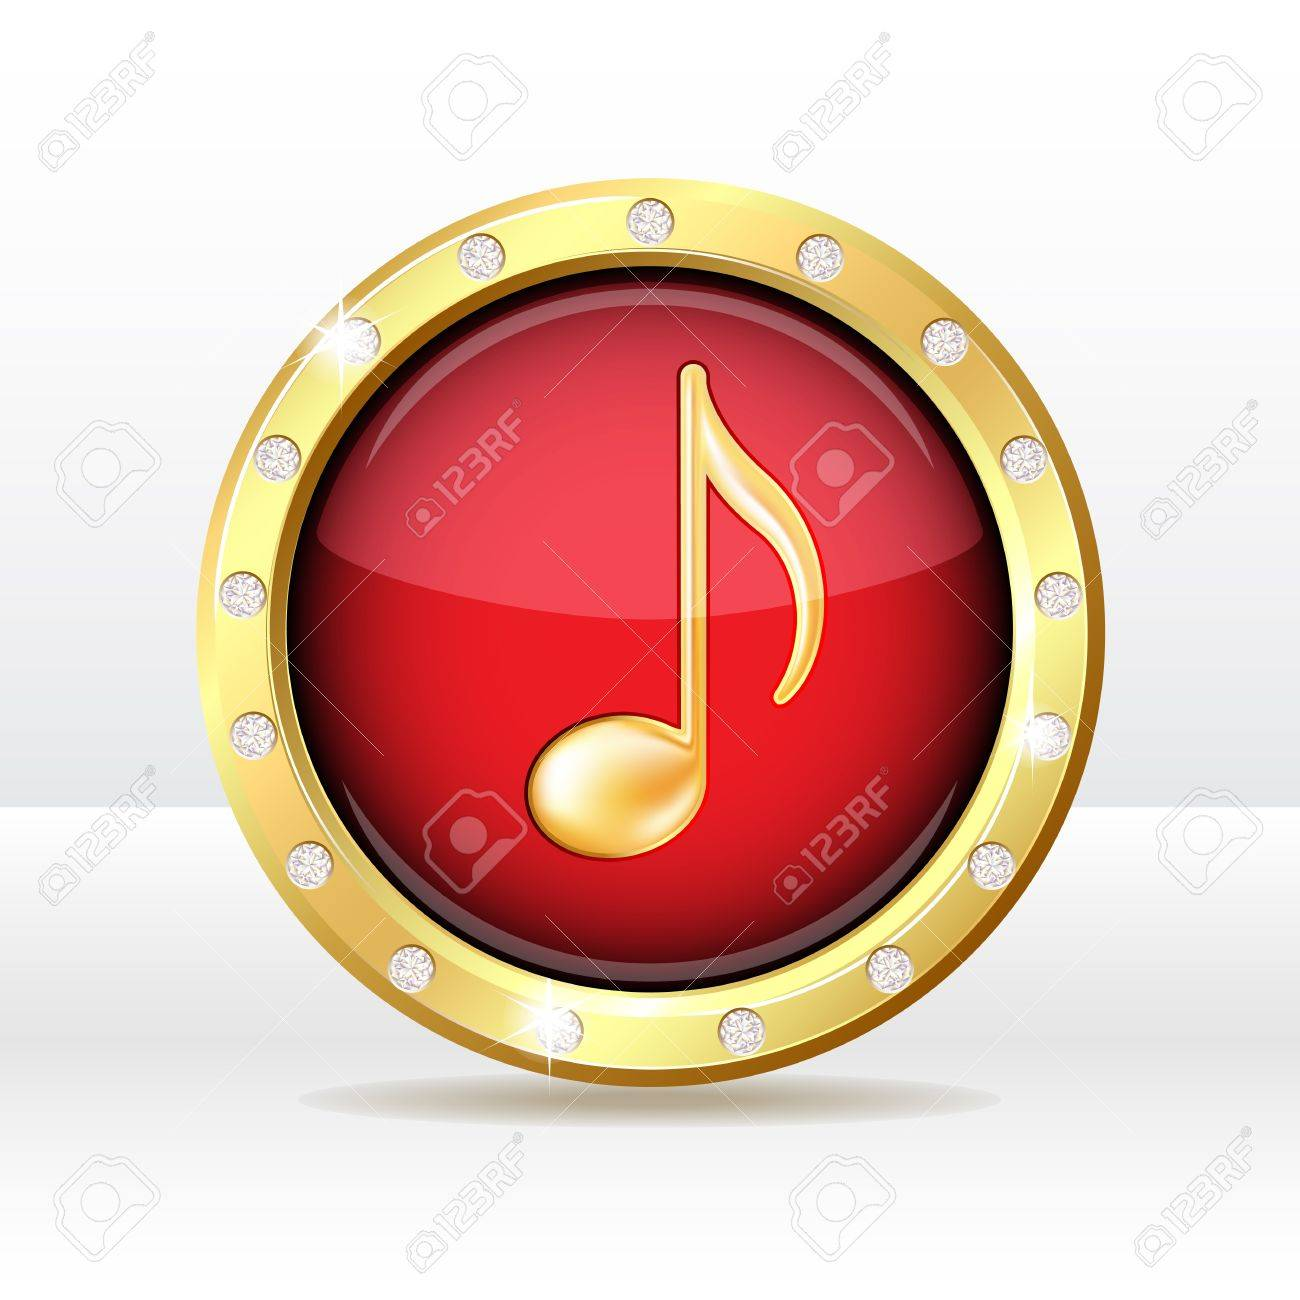 old button with musical note sign  Music icon illustration Stock Vector - 20276322